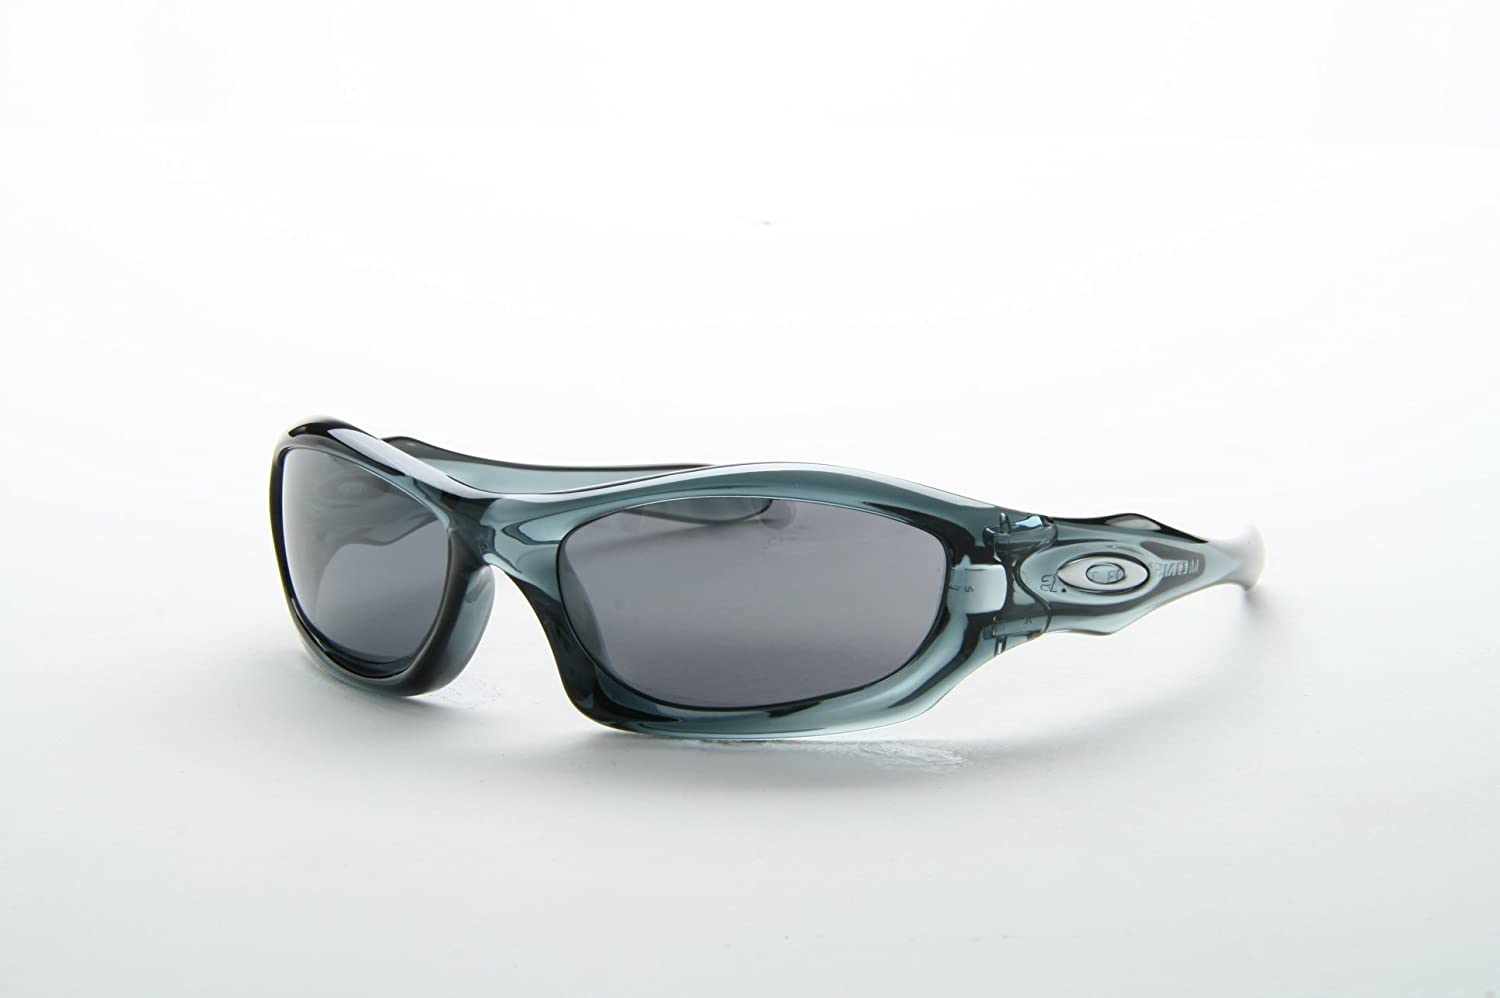 5718db2a2b New Oakley OO 9028 MONSTER DOG 05 012 Black Men Women Plastic Sunglasses   Amazon.co.uk  Sports   Outdoors